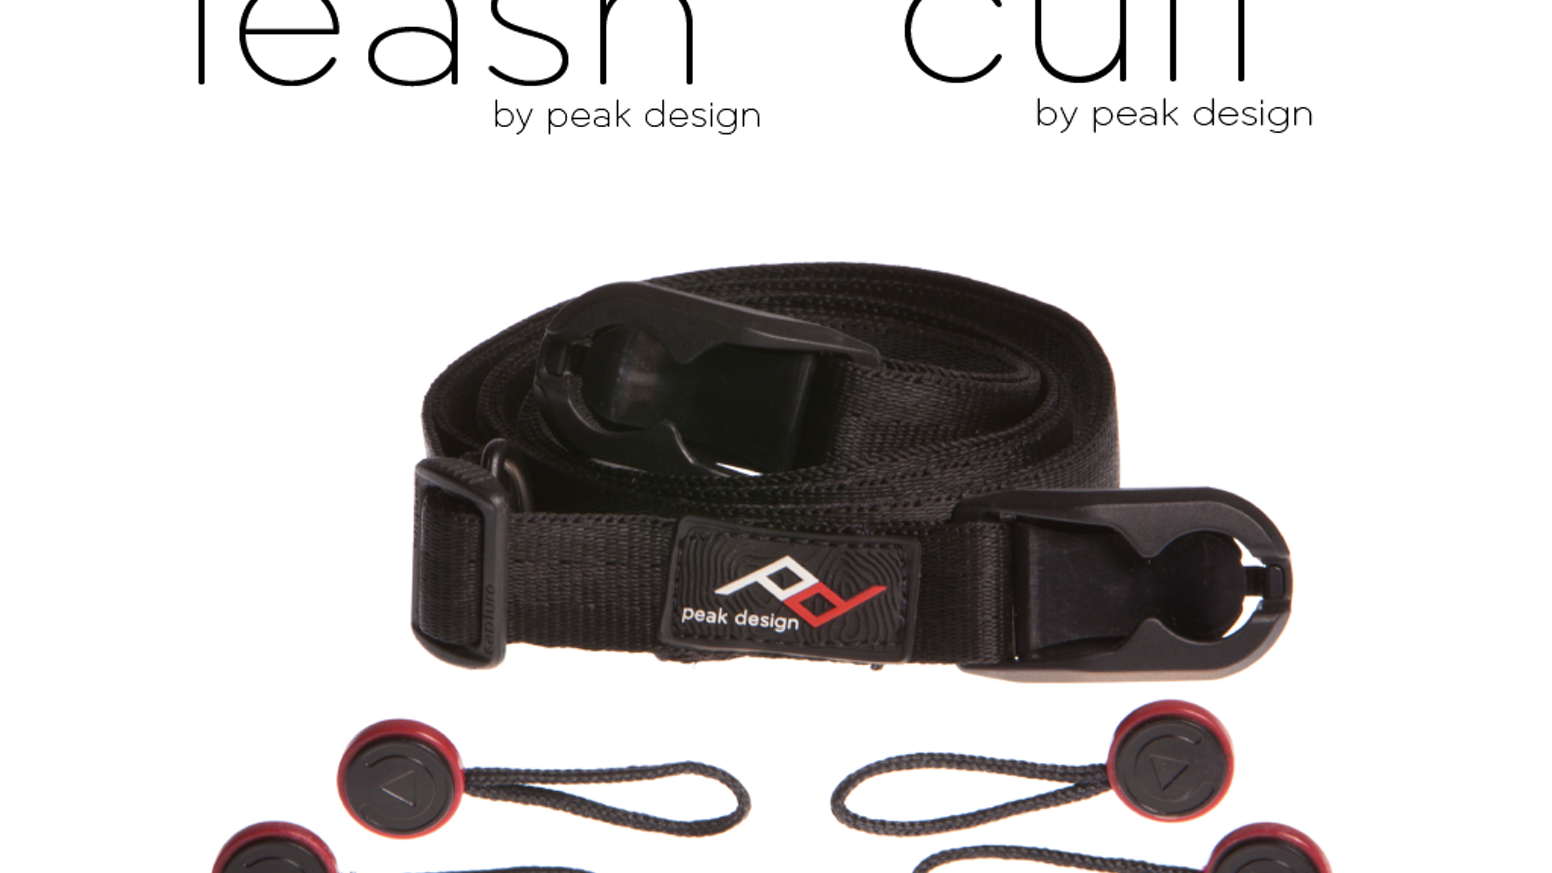 A versatile, quick connecting camera strap - neck strap, sling strap, safety tether and video stabilizer - all in one.